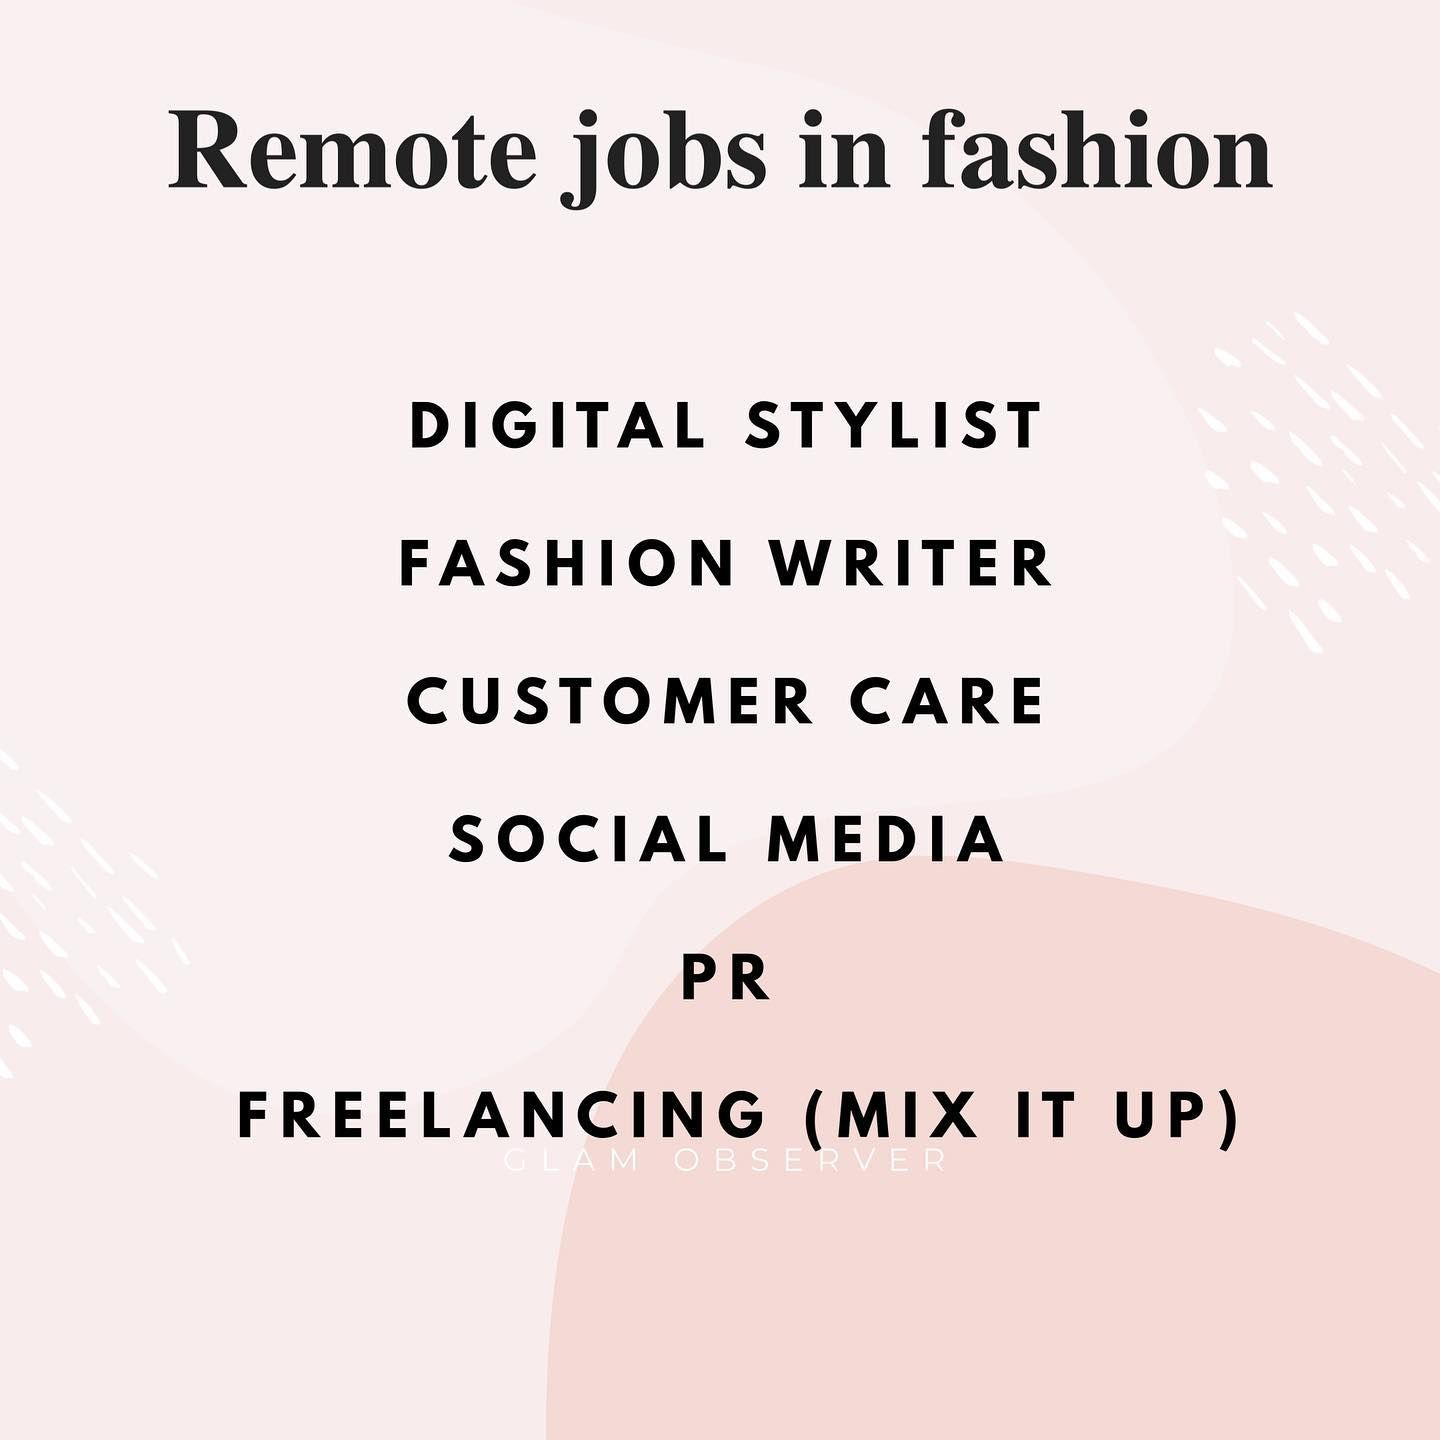 Want To Work In Fashion From Home These Are The Best Career Options To Pursue You Can Choose One Or Become A Freelance And Mix It Up And Work With Different B